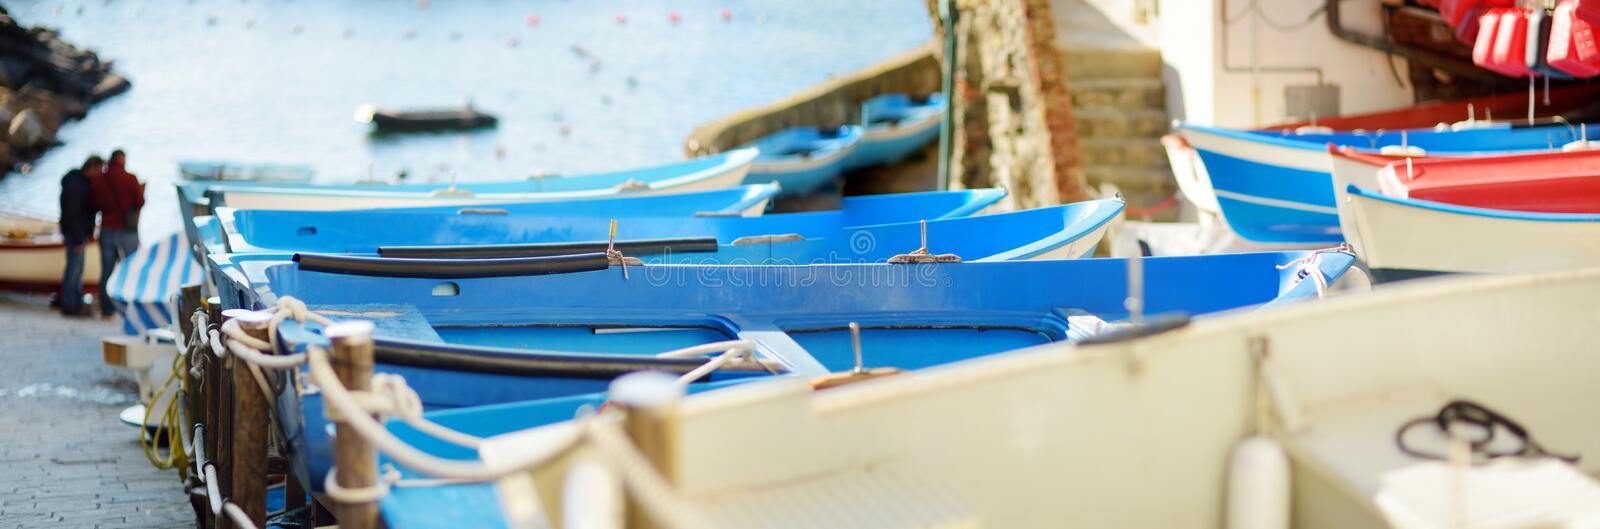 Colourful boats in tiny marina of Riomaggiore, the largest of the five centuries-old villages of Cinque Terre, Italian Riviera,. Colourful boats in tiny marina royalty free stock photo